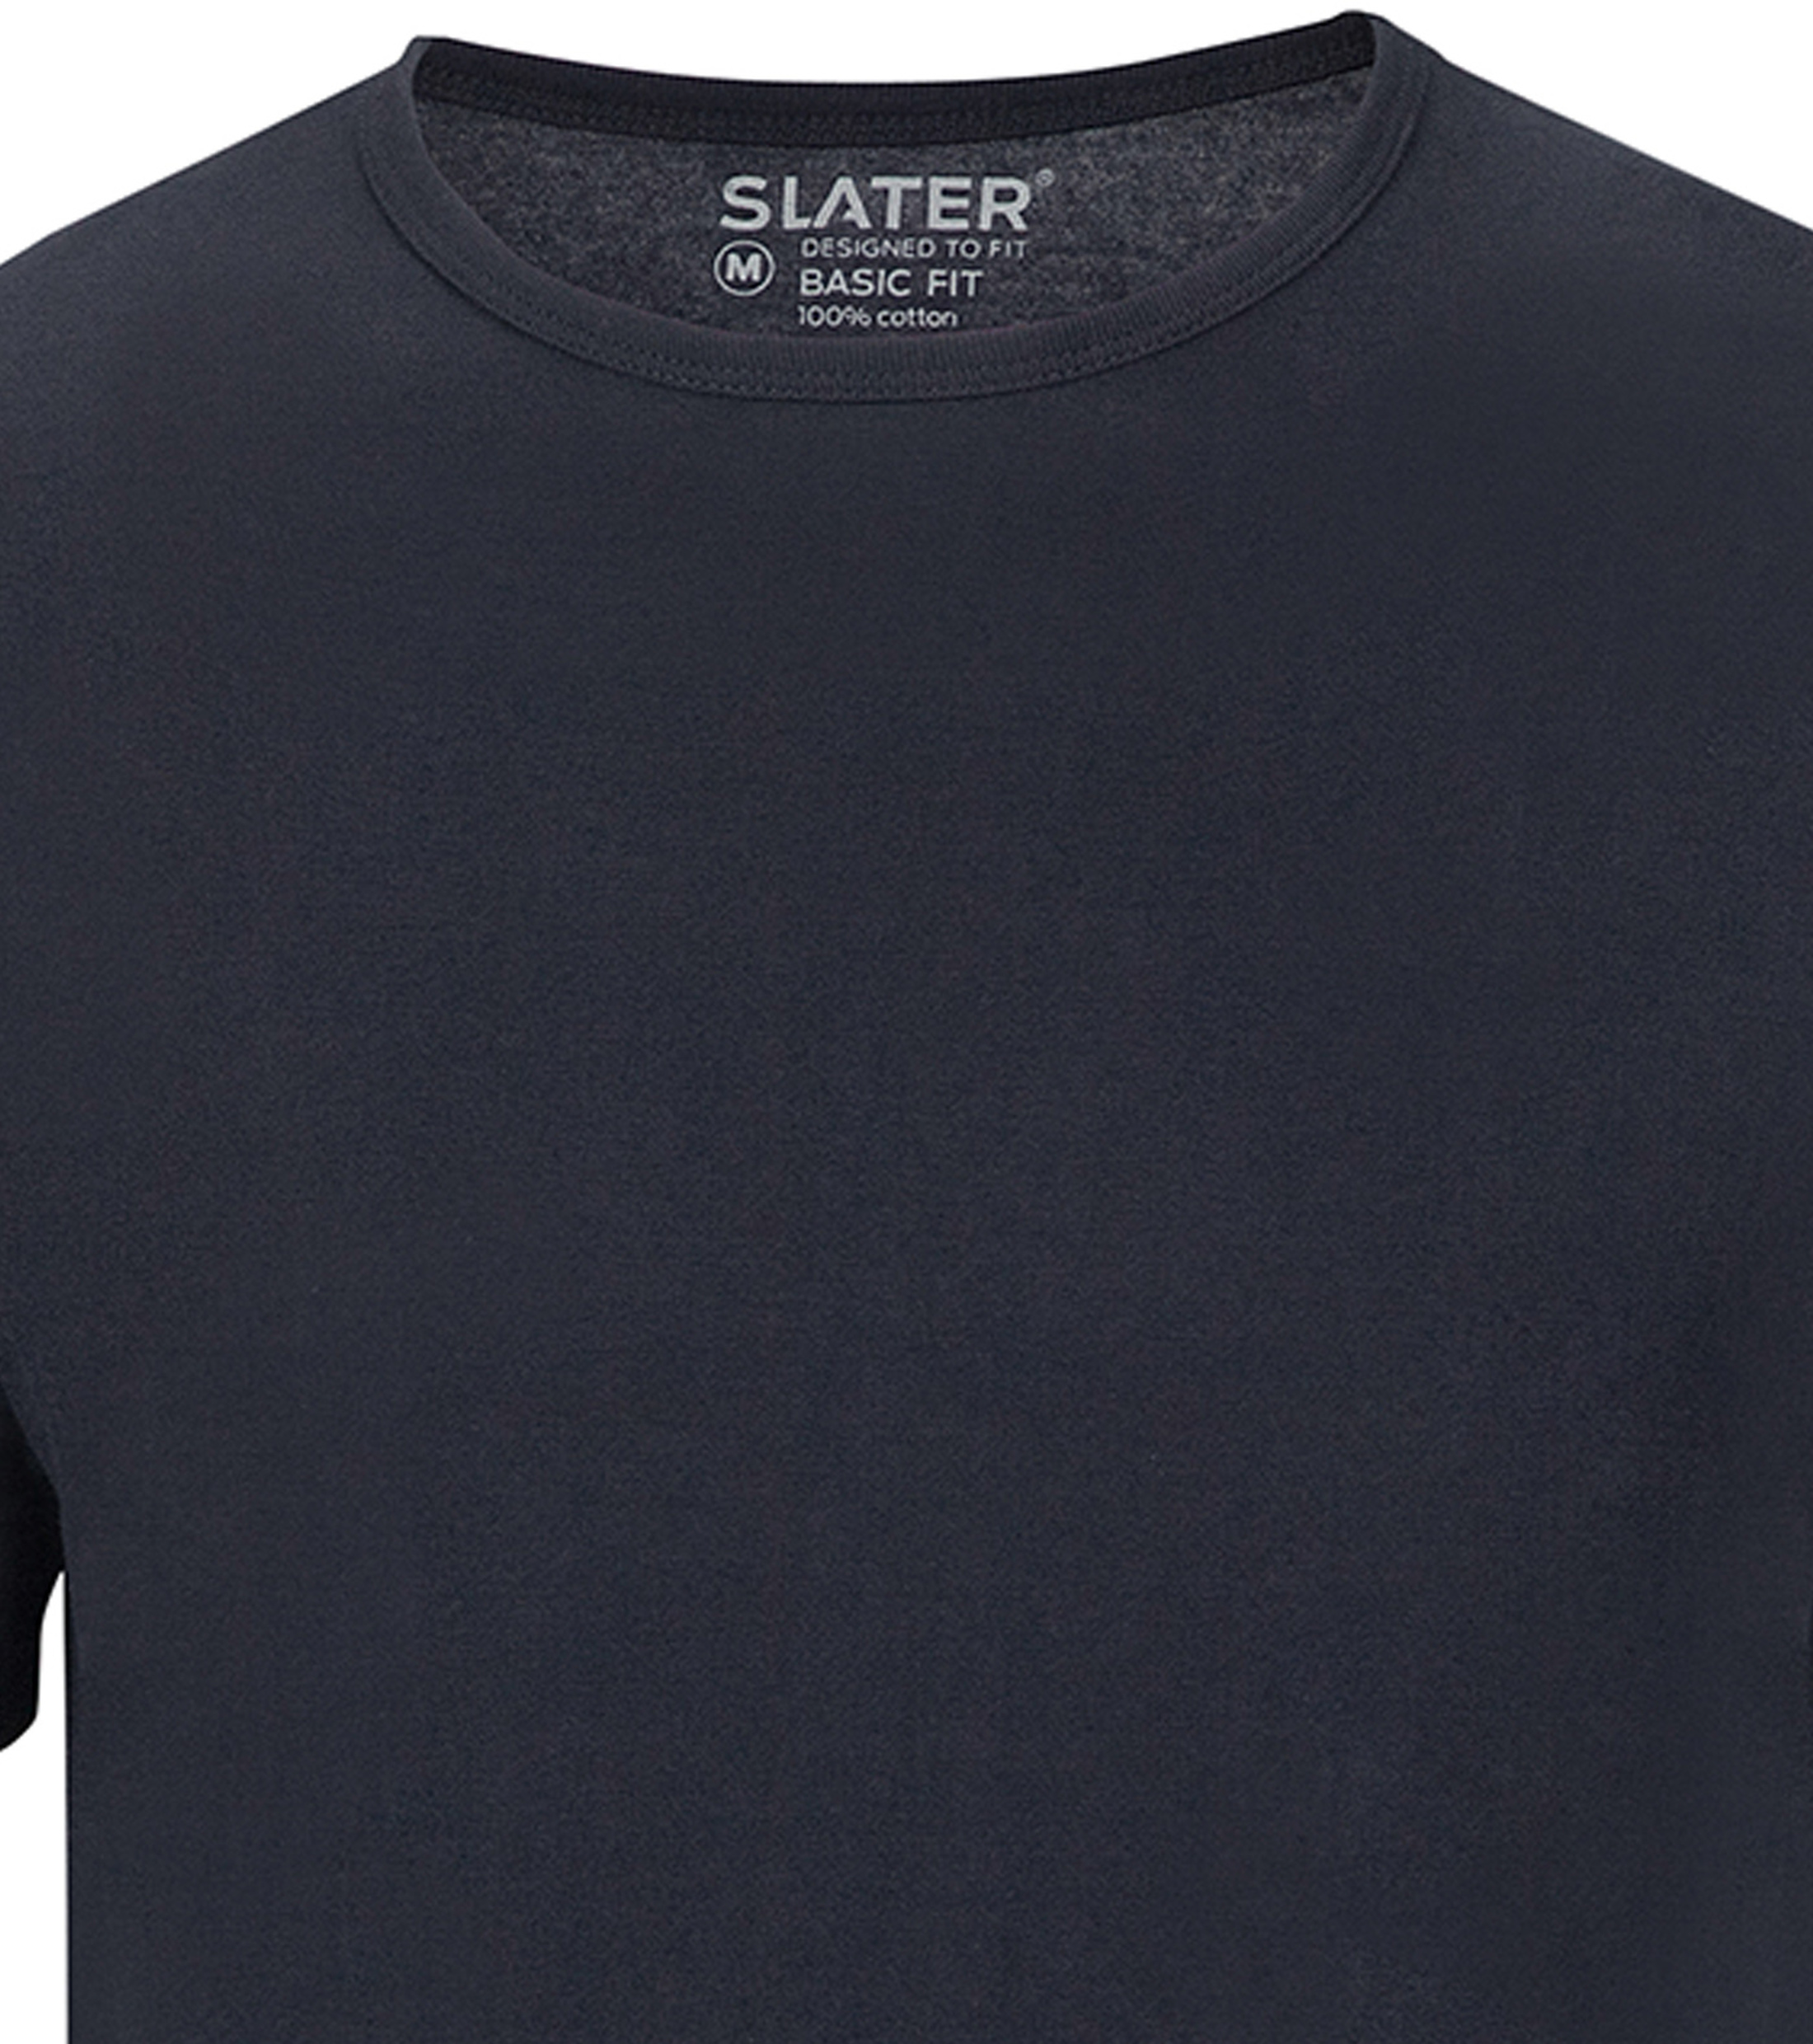 Slater 2-pack Basic Fit T-shirt Navy foto 1